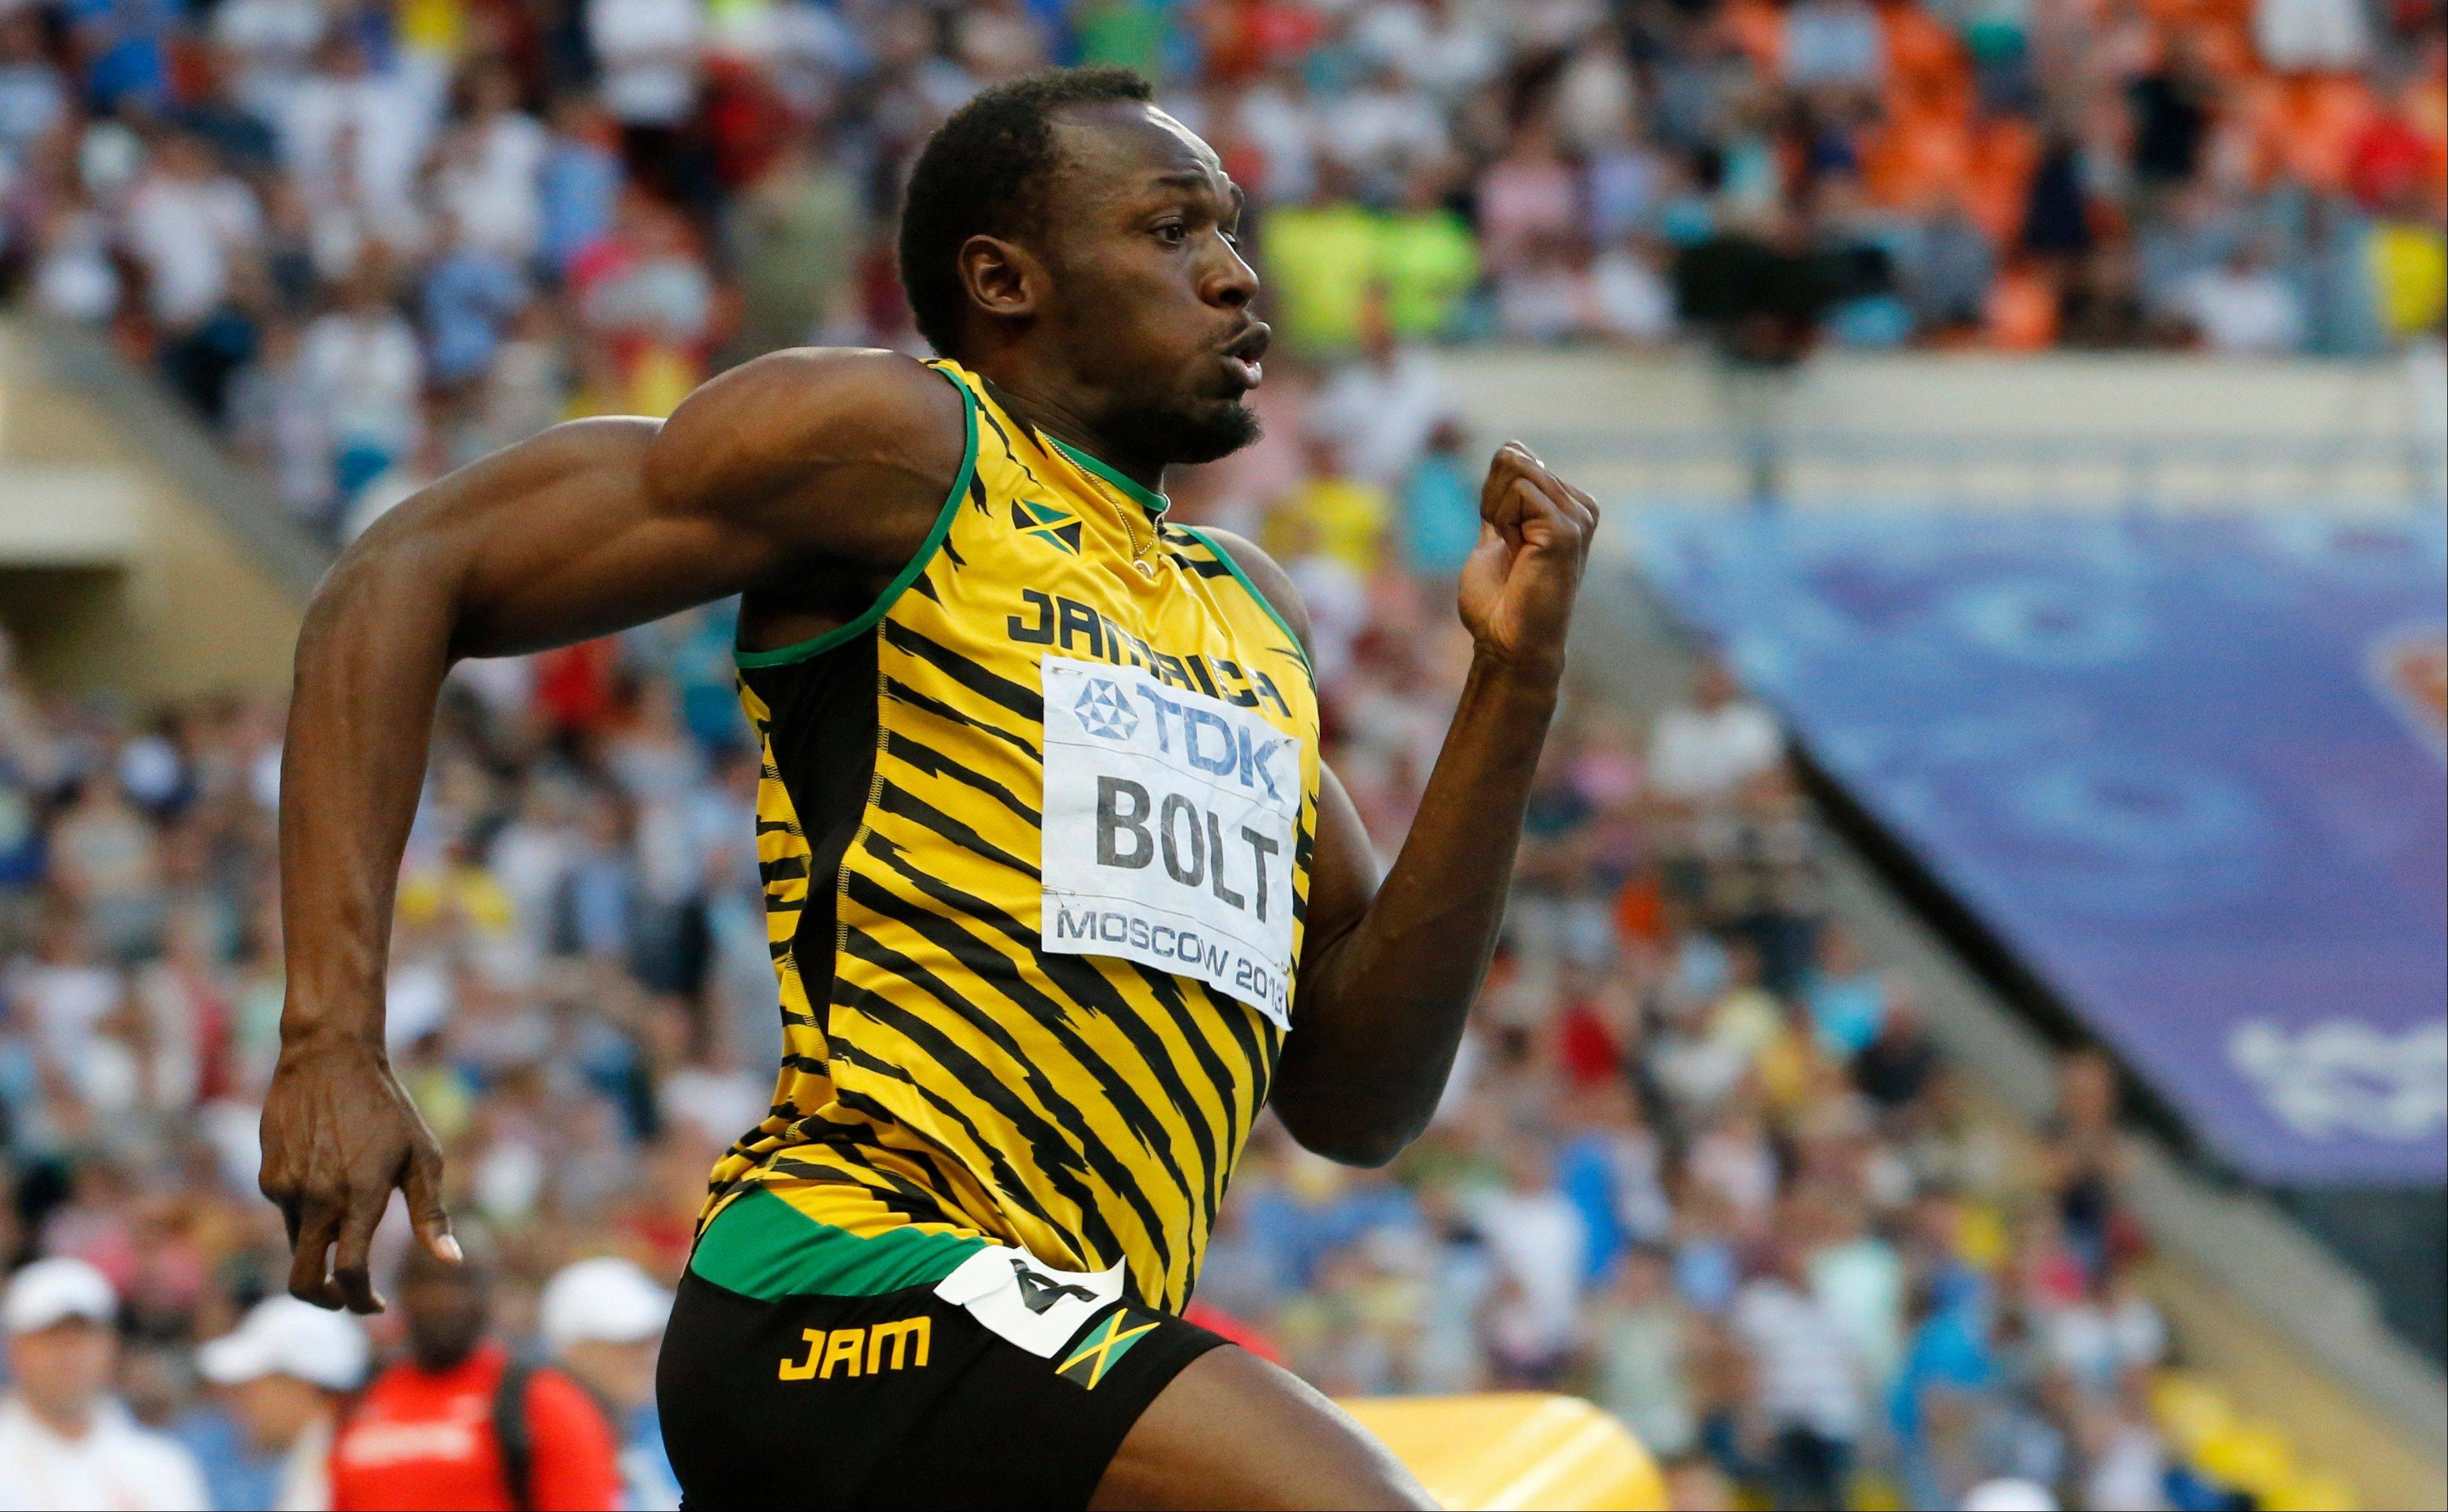 Jamaica's Usain Bolt competes in the men's 200-meter final at the World Athletics Championships in the Luzhniki stadium in Moscow, Russia, Saturday, Aug. 17, 2013.